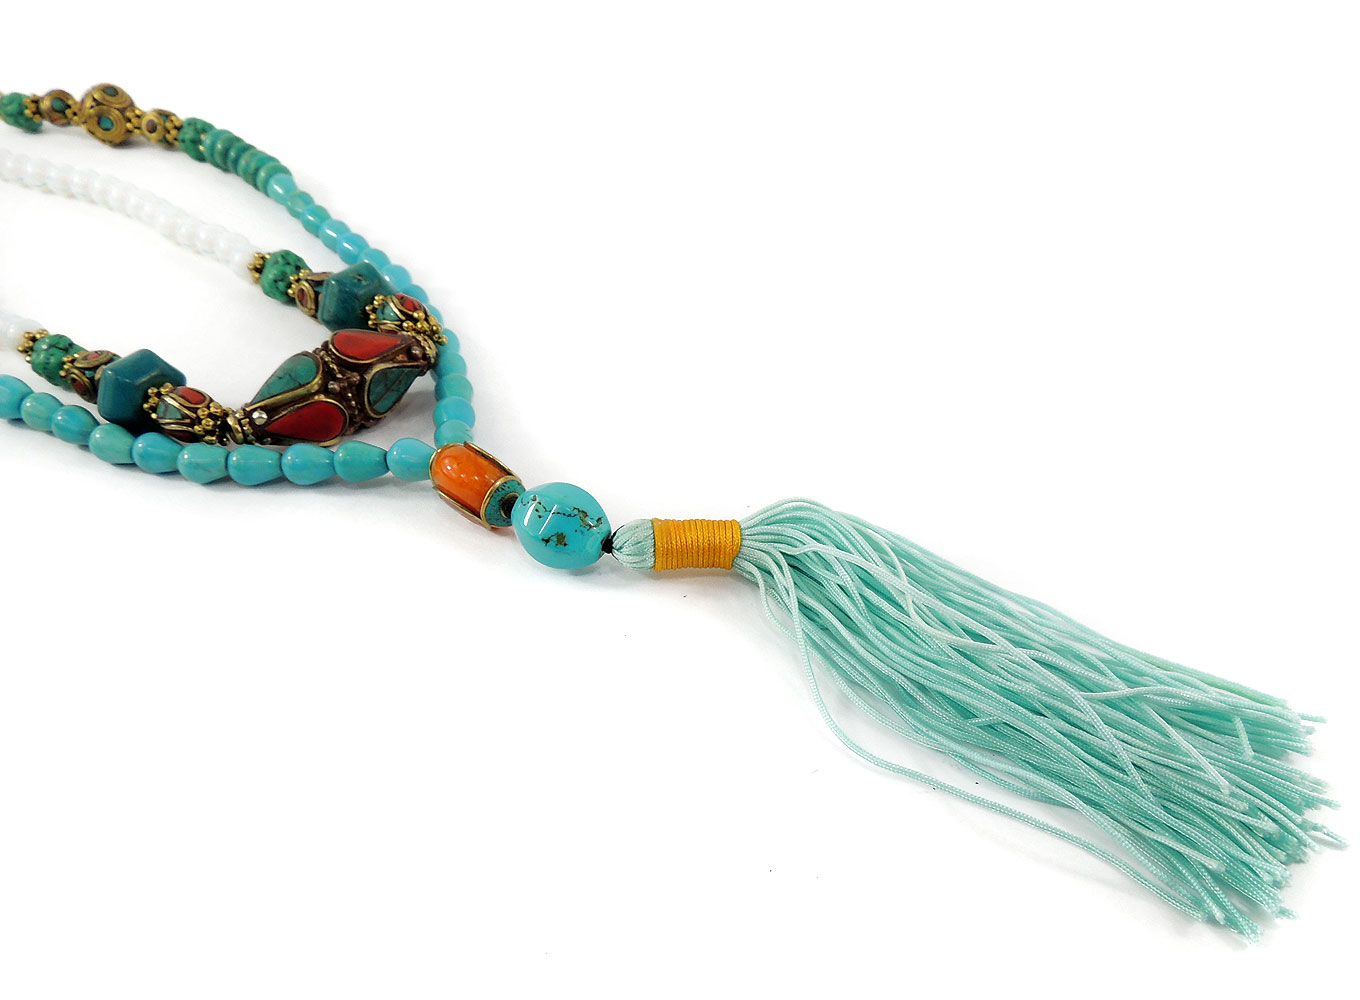 Tibetan Prayer Beads Necklace Baby Moon Turquoise Mala 44 Inch by